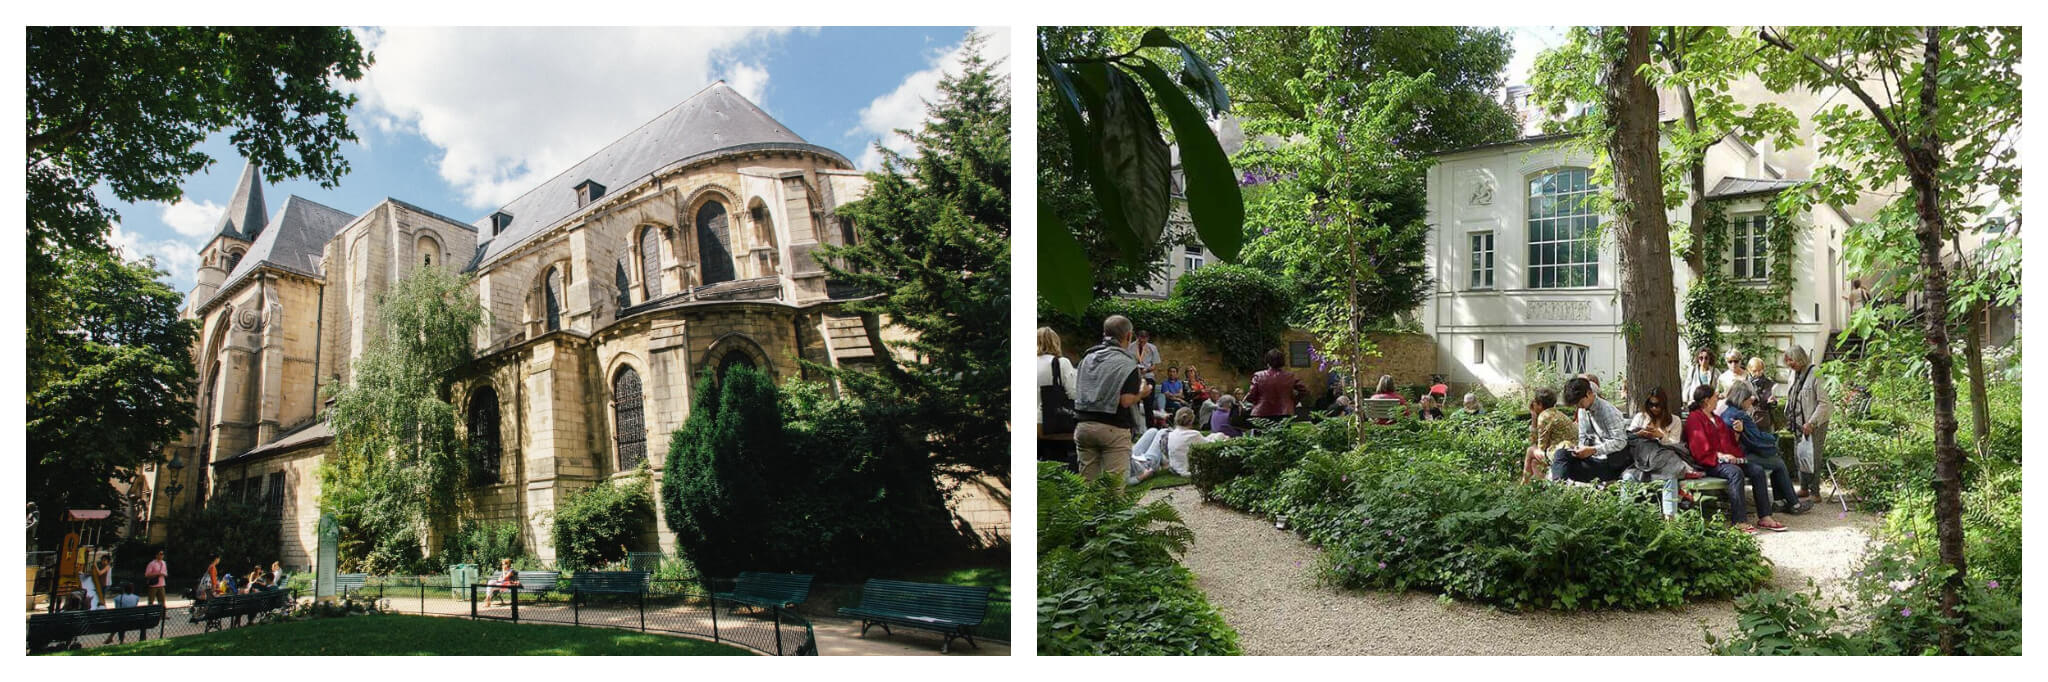 Left: Saint-Germain-des-Prés church with a small square with greenery and park benches in front of it. Right: The Musée Delacroix courtyard outside the museum. There is a lot of greenery and trees with people sitting on benches.